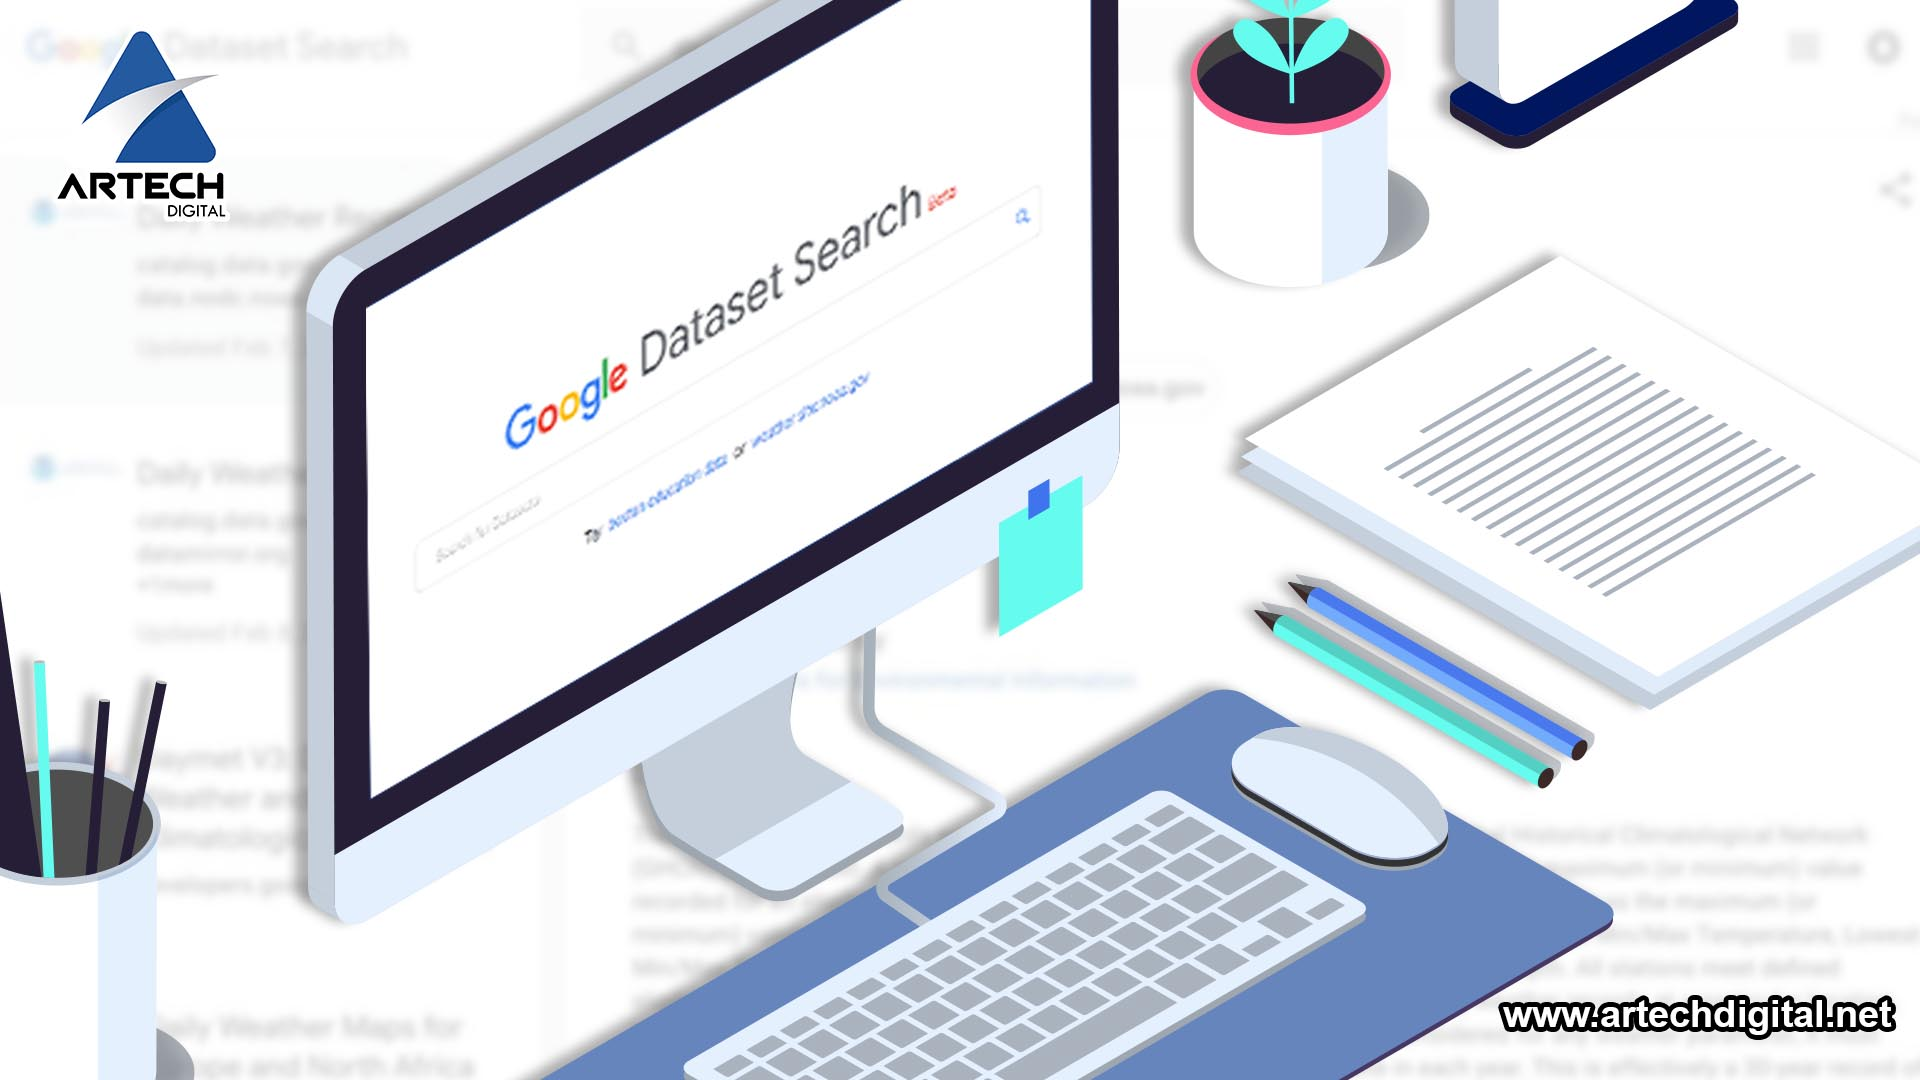 Dataset Search - Artech Digital